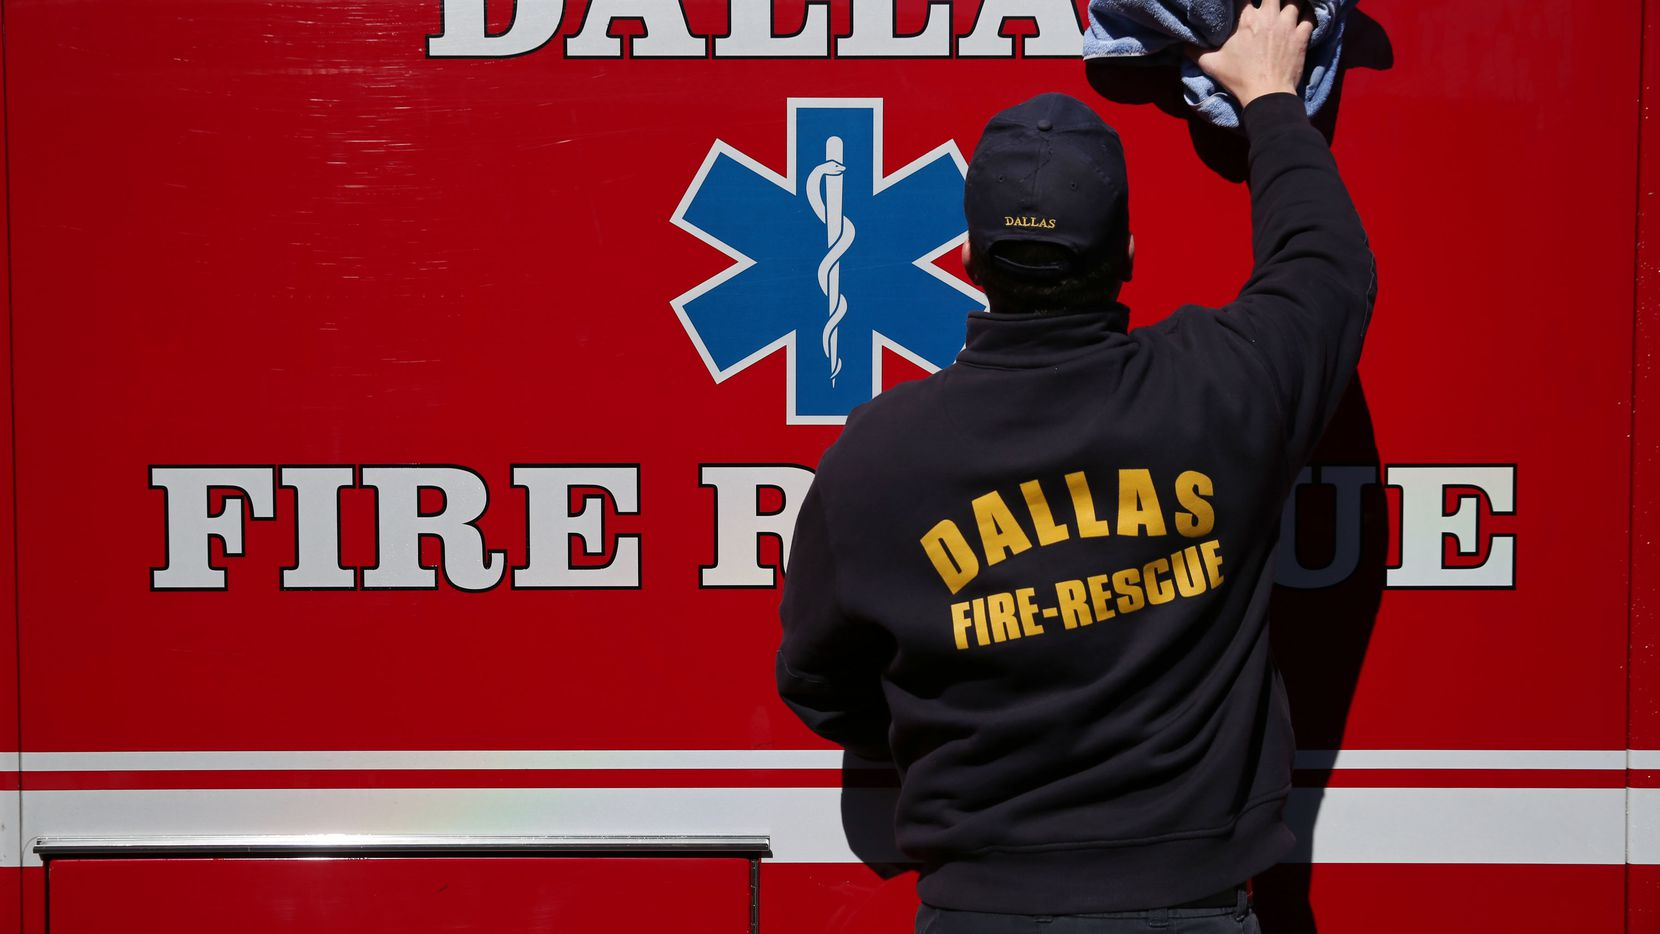 Firefighter John Smith cleans a vehicle outside Dallas Fire-Rescue Department fire station 44 at 2025 Lagow Street in Dallas in February 2016.